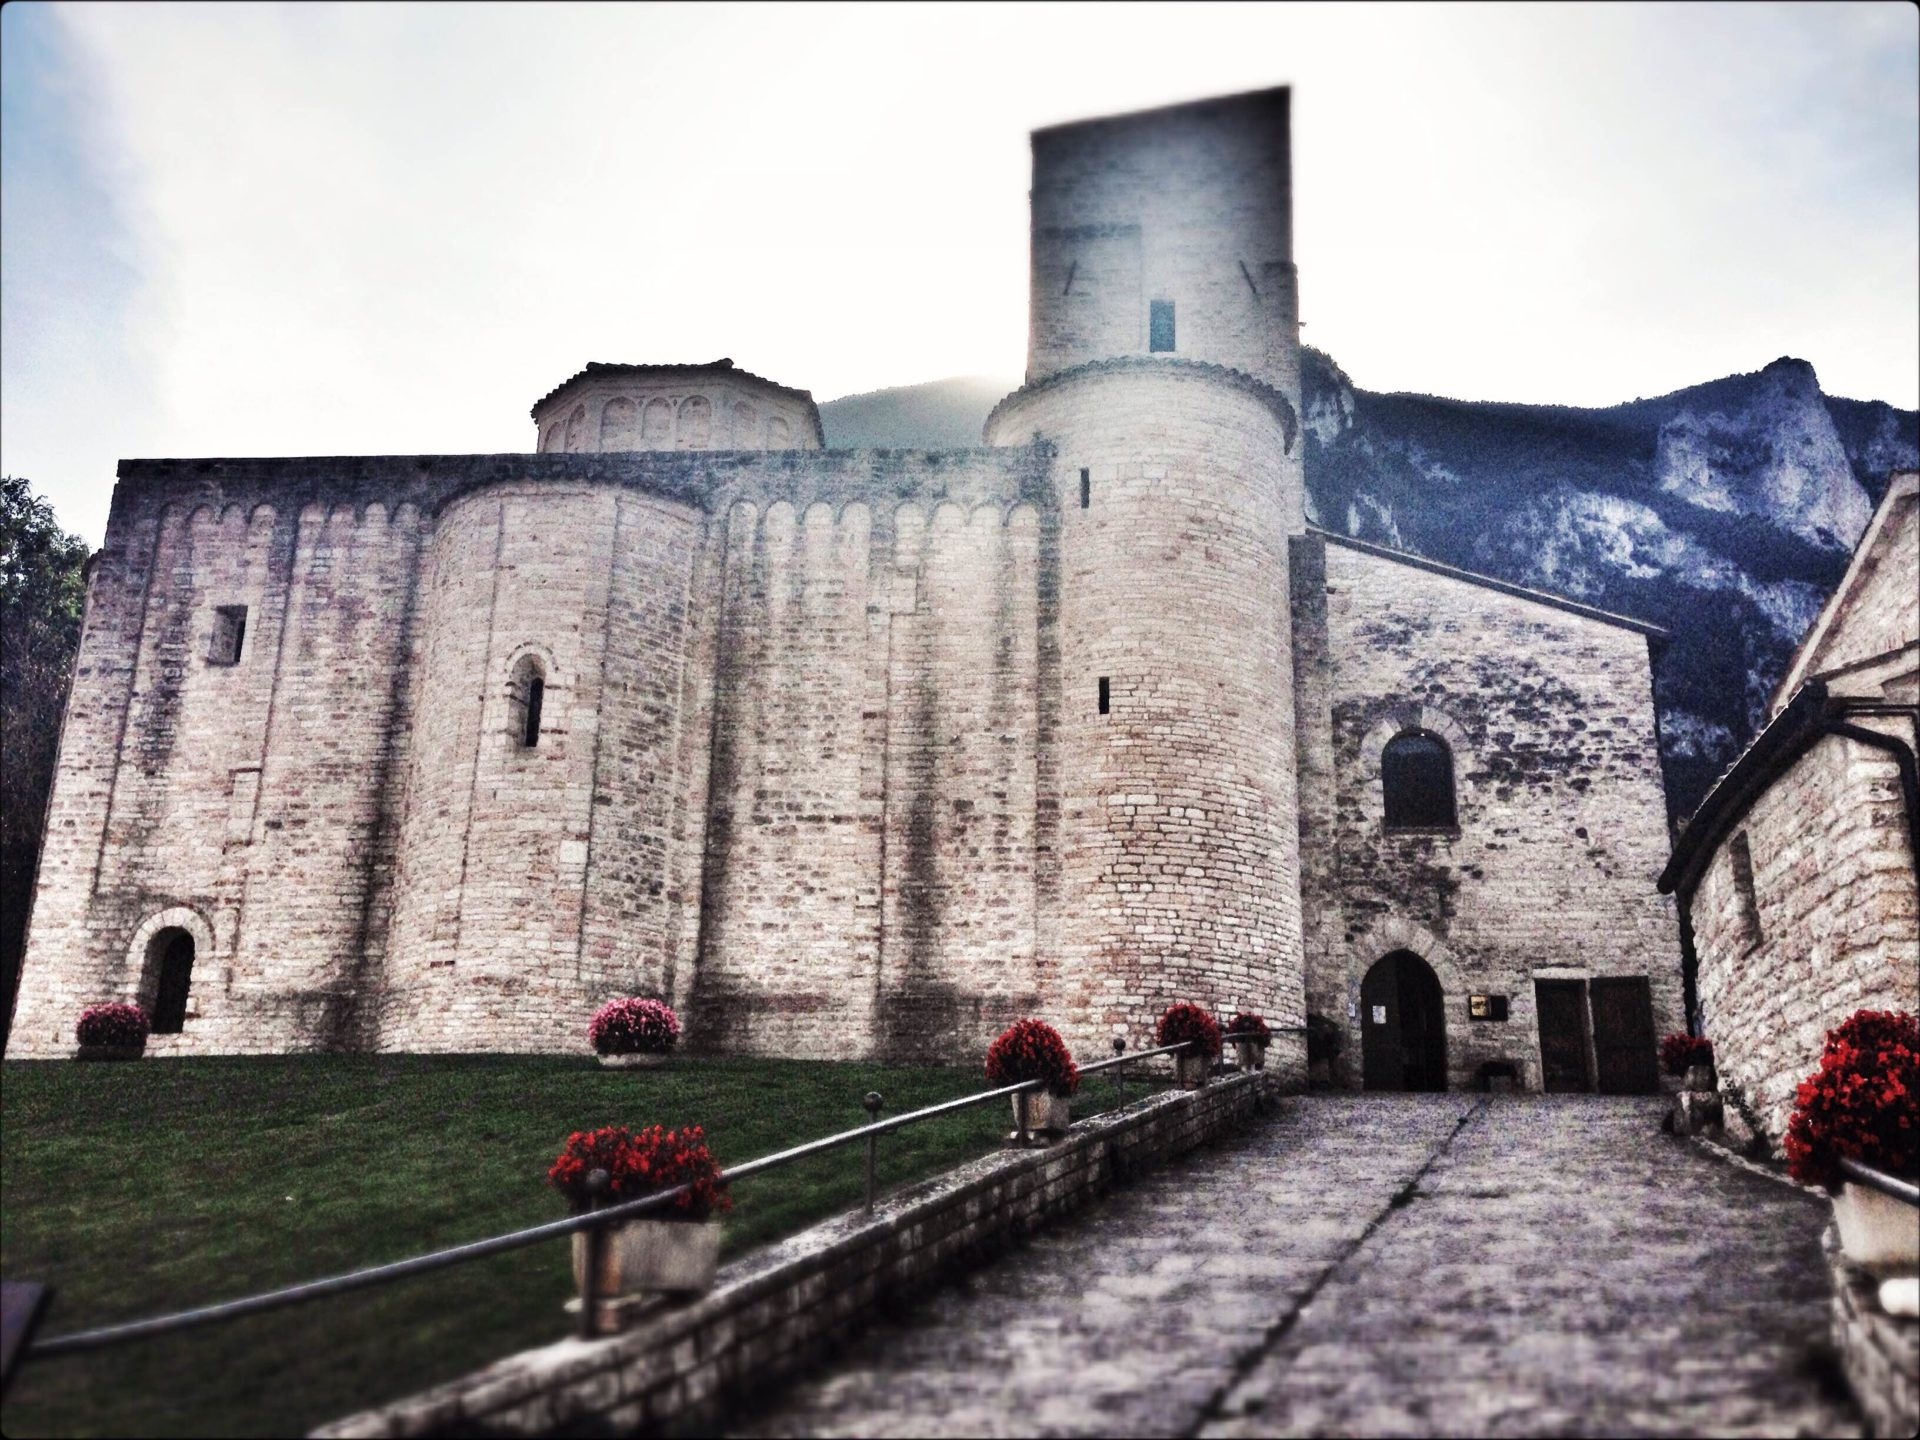 San Vittore delle Chiuse: magical legends and a poetic environment